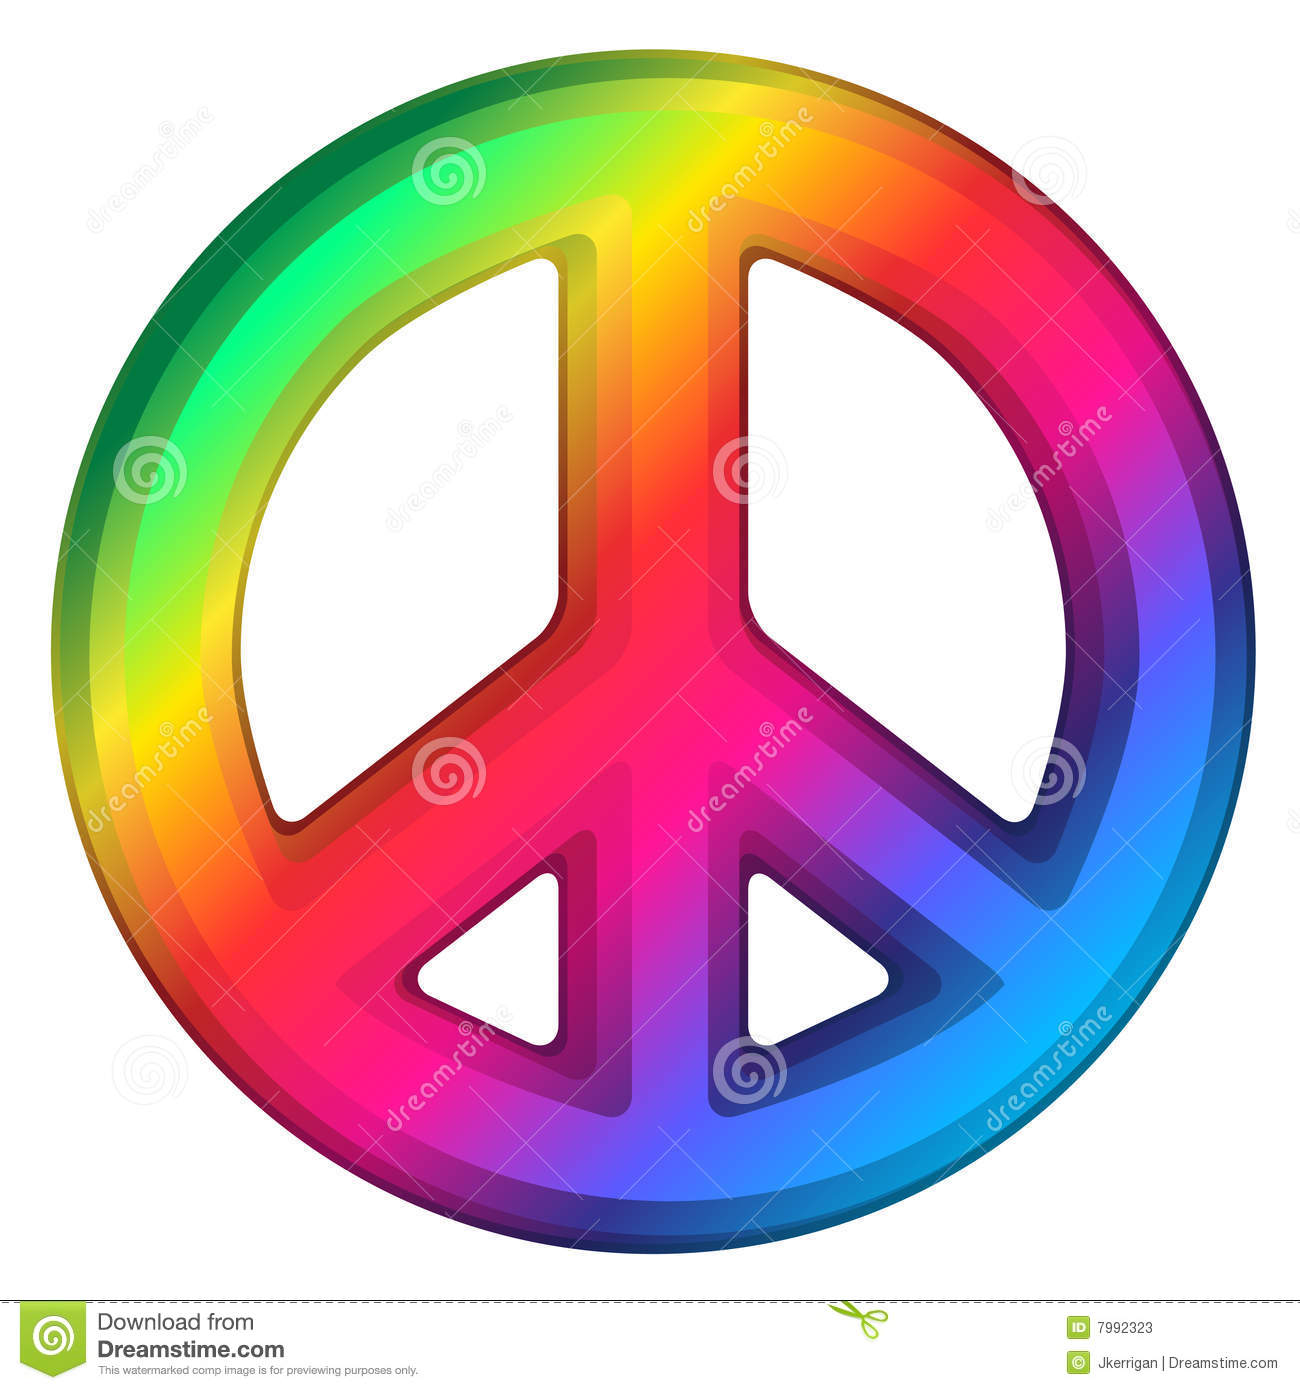 Rainbow Peace Sign Stock Photos - Image: 7992323